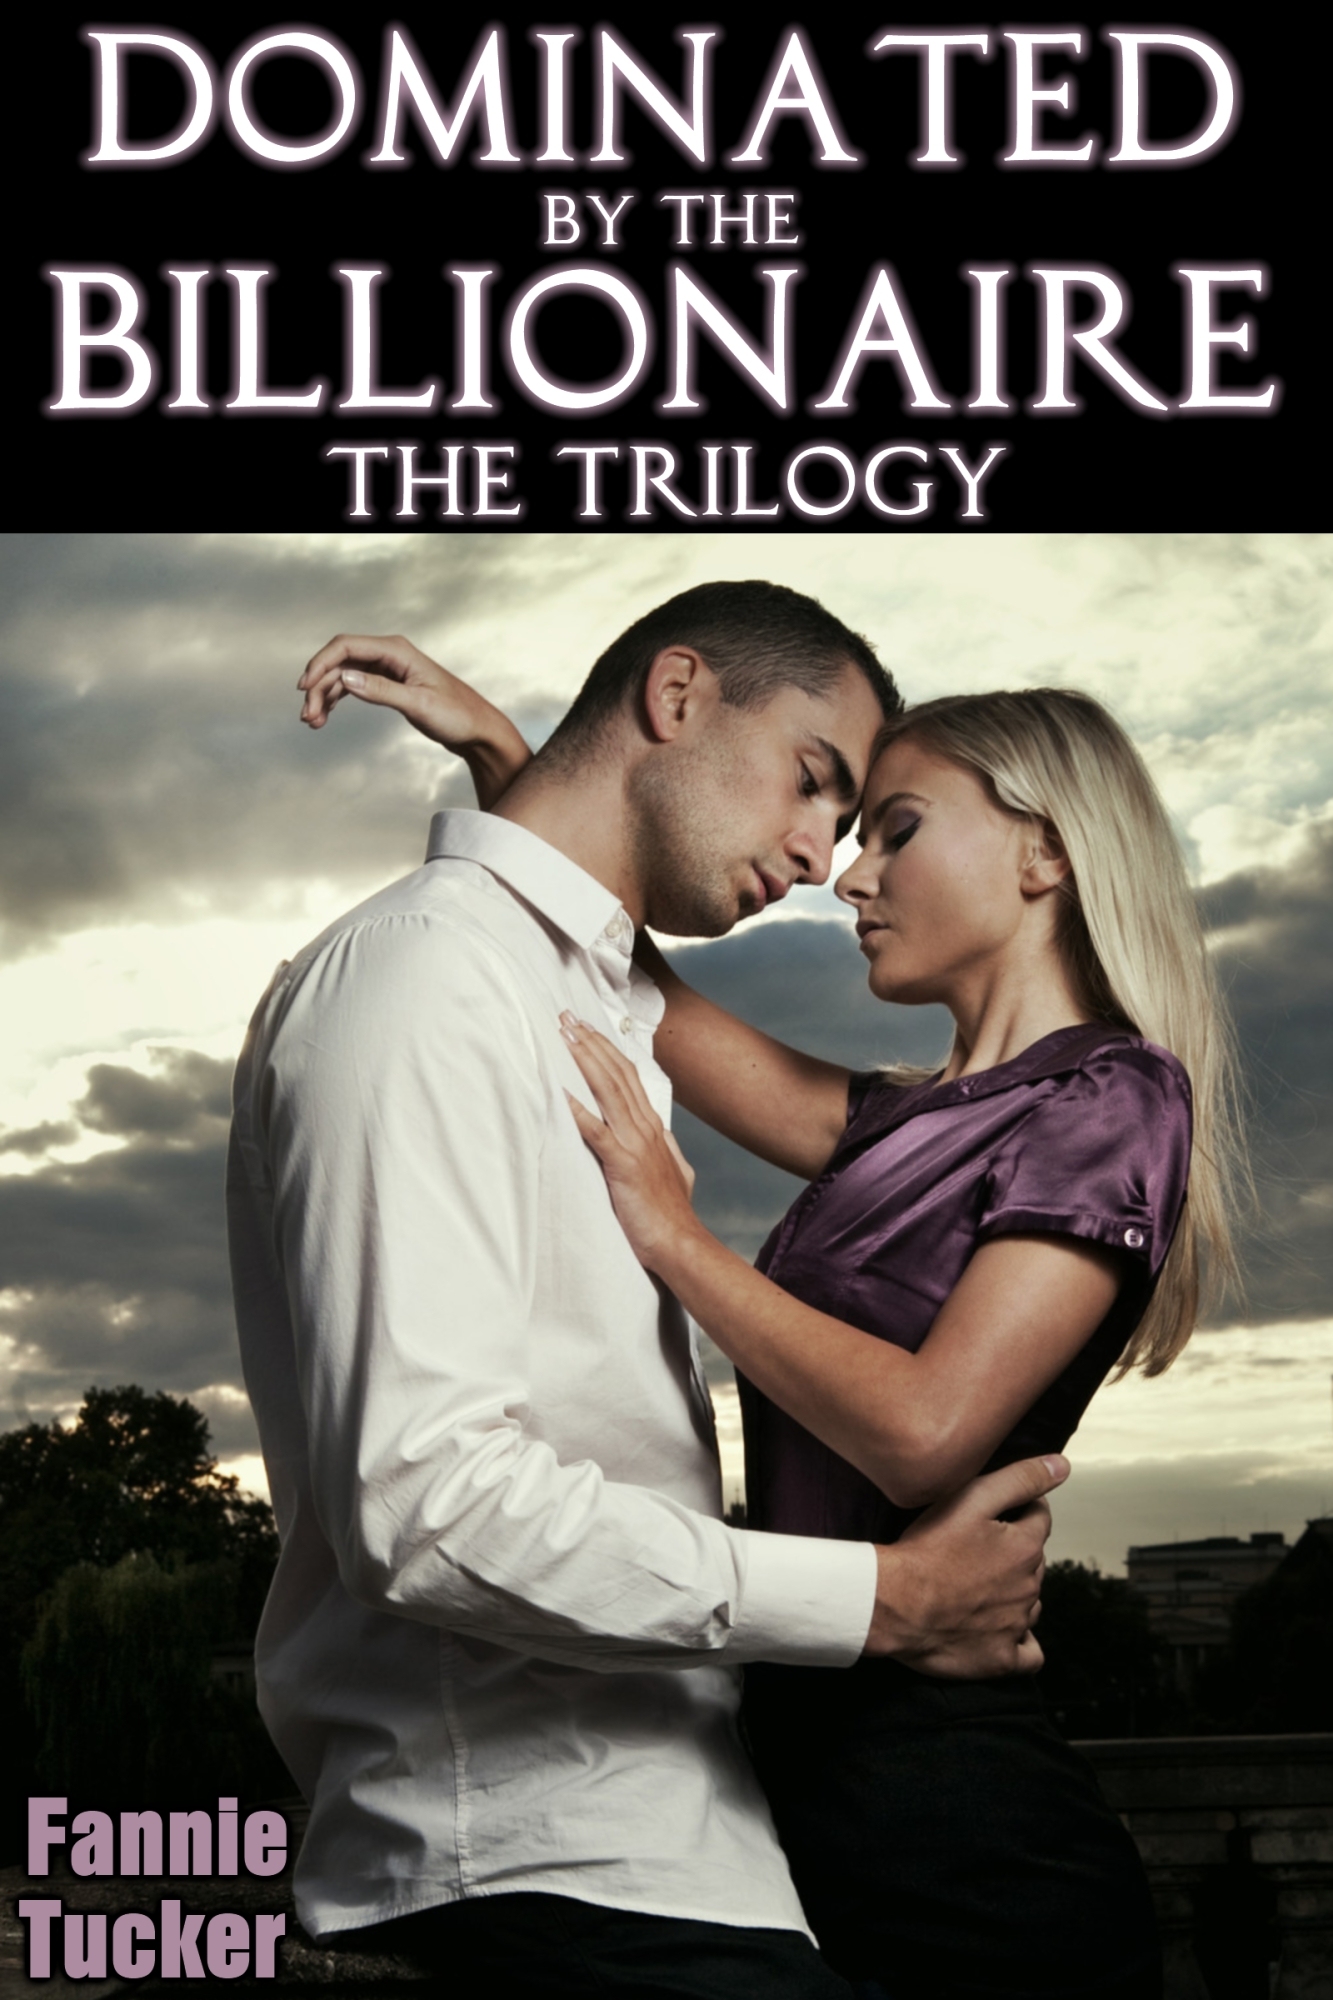 Fannie Tucker - Dominated by the Billionaire: The Trilogy